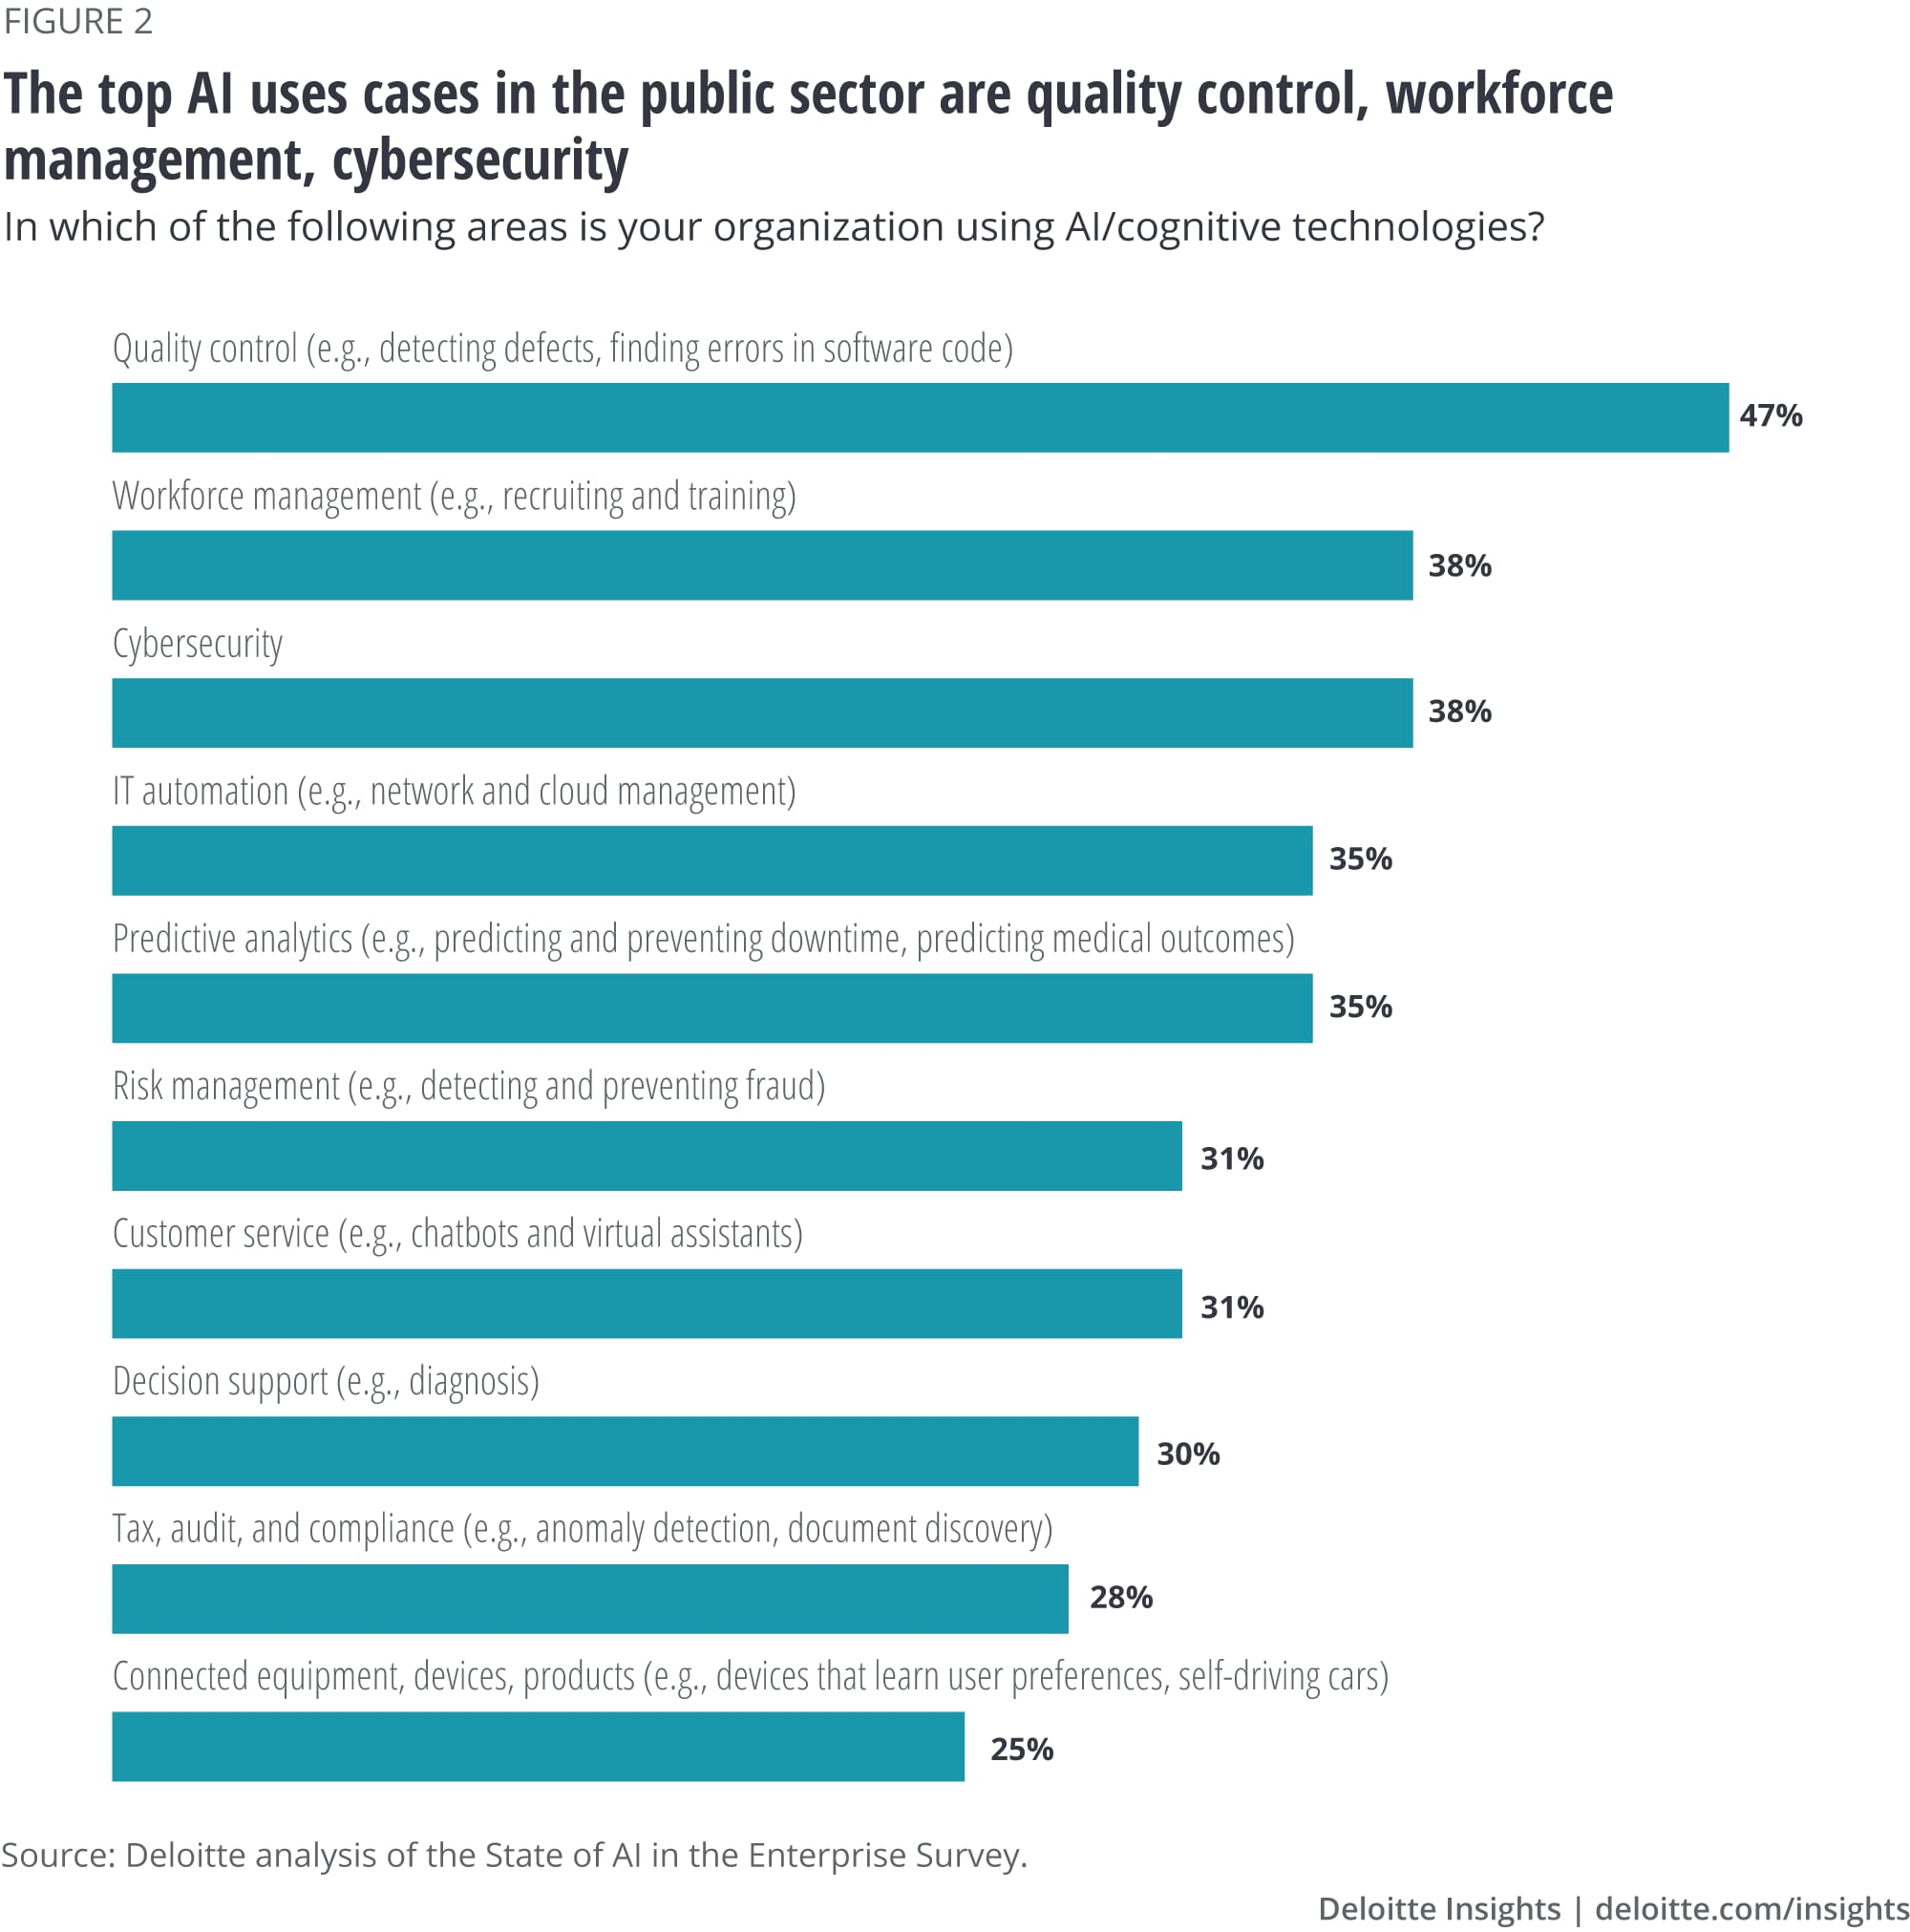 The top AI uses cases in the public sector are quality control, workforce management, cybersecurity